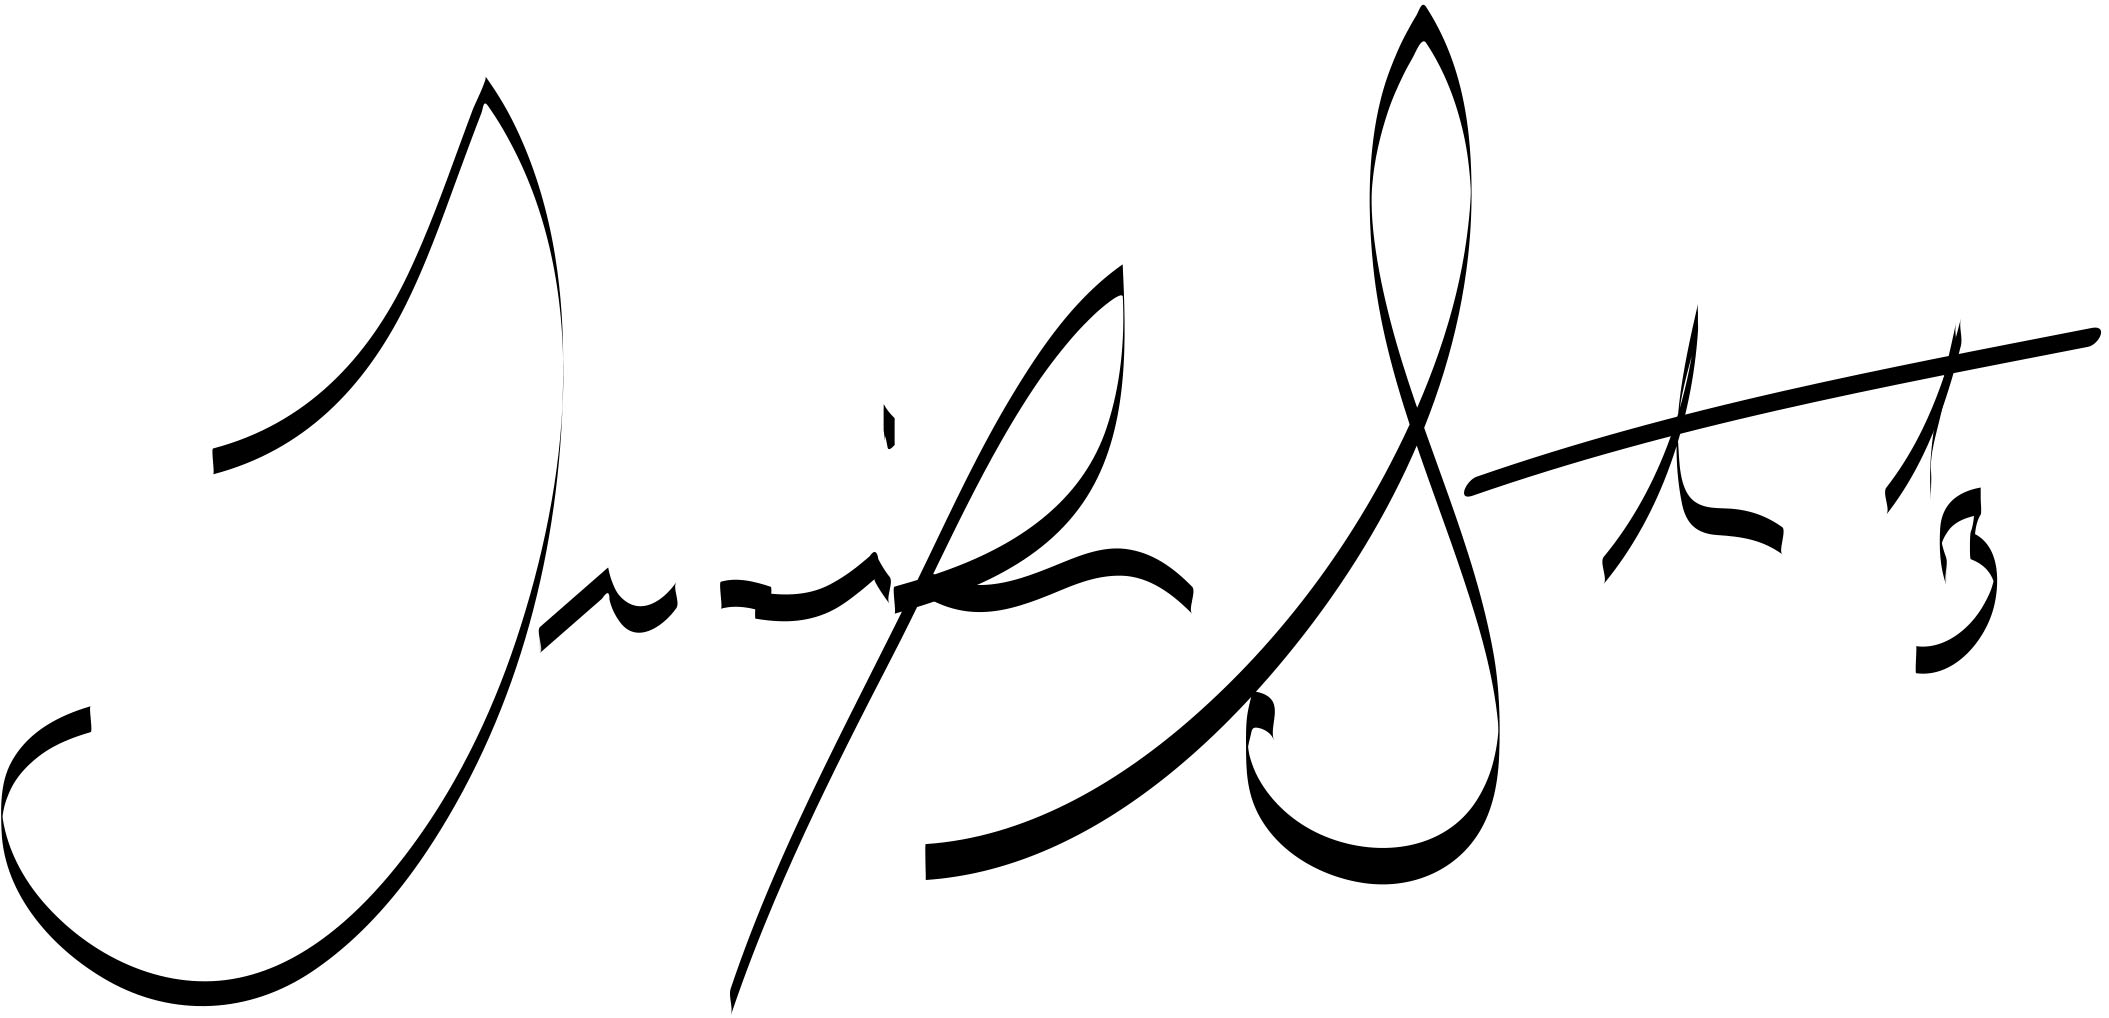 Jennifer Sturtz's Signature